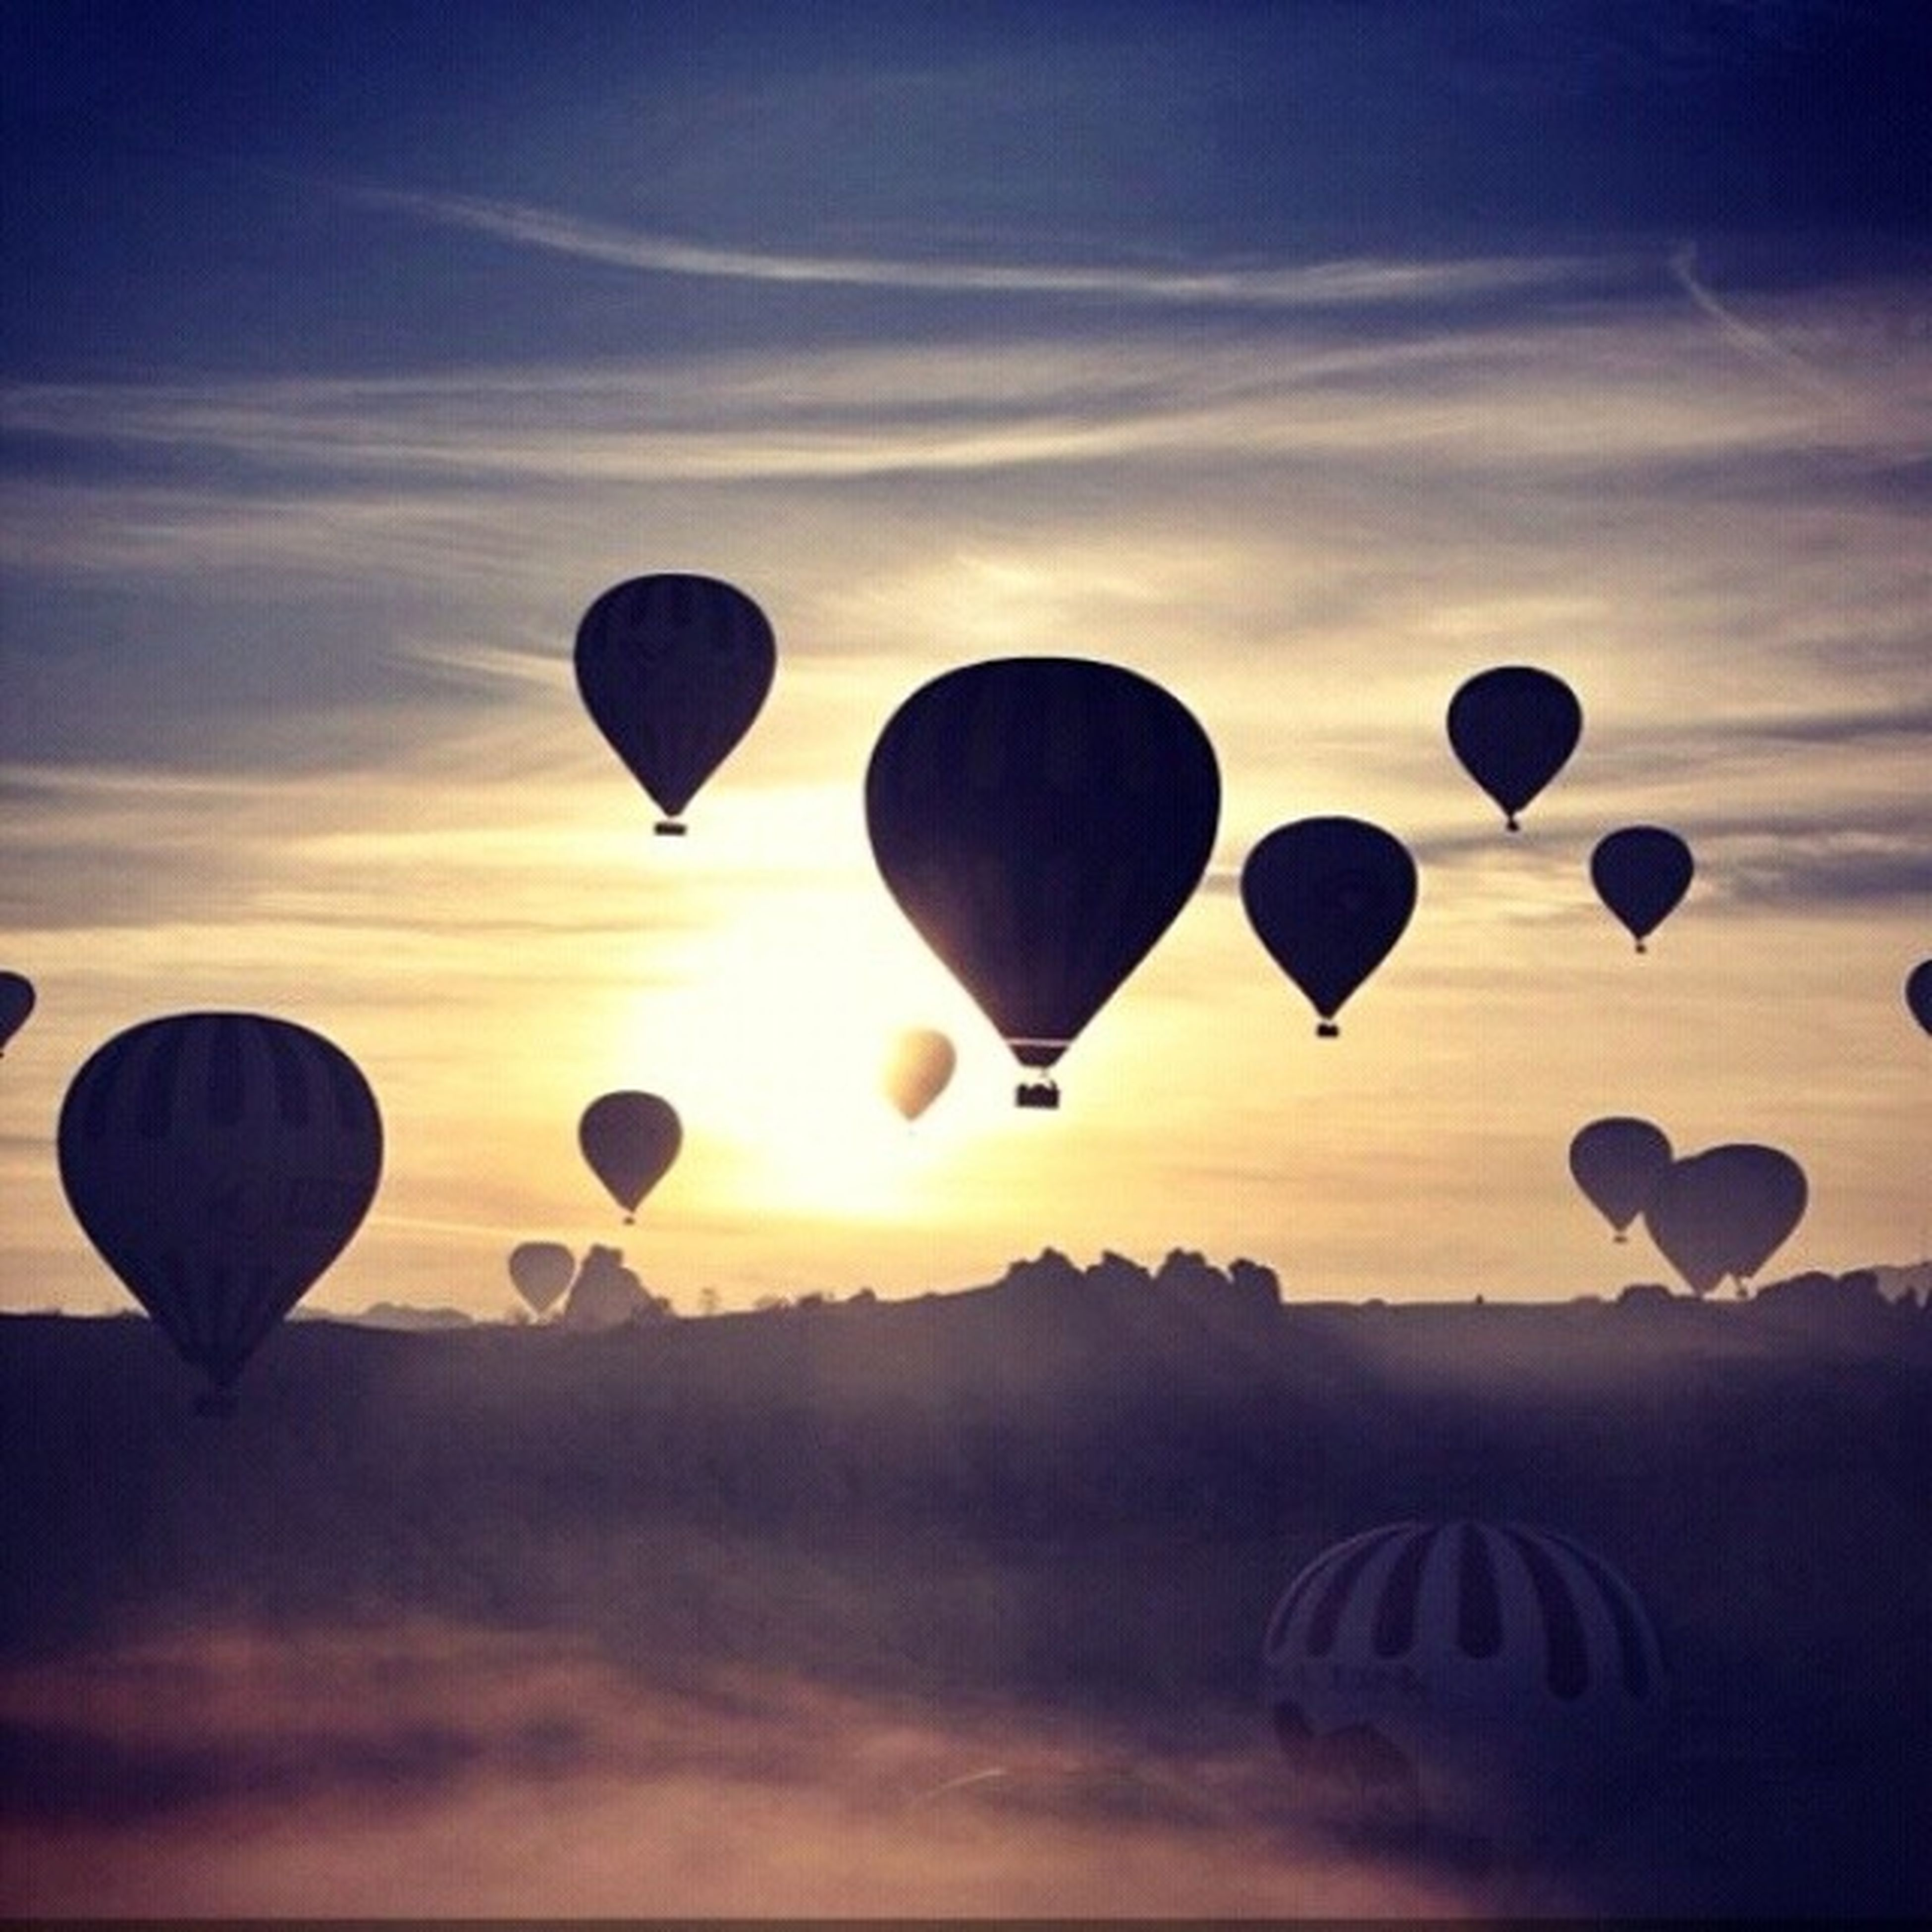 hot air balloon, flying, mid-air, sky, parachute, sunset, multi colored, low angle view, cloud - sky, scenics, silhouette, tranquility, balloon, transportation, tranquil scene, adventure, nature, beauty in nature, outdoors, circle